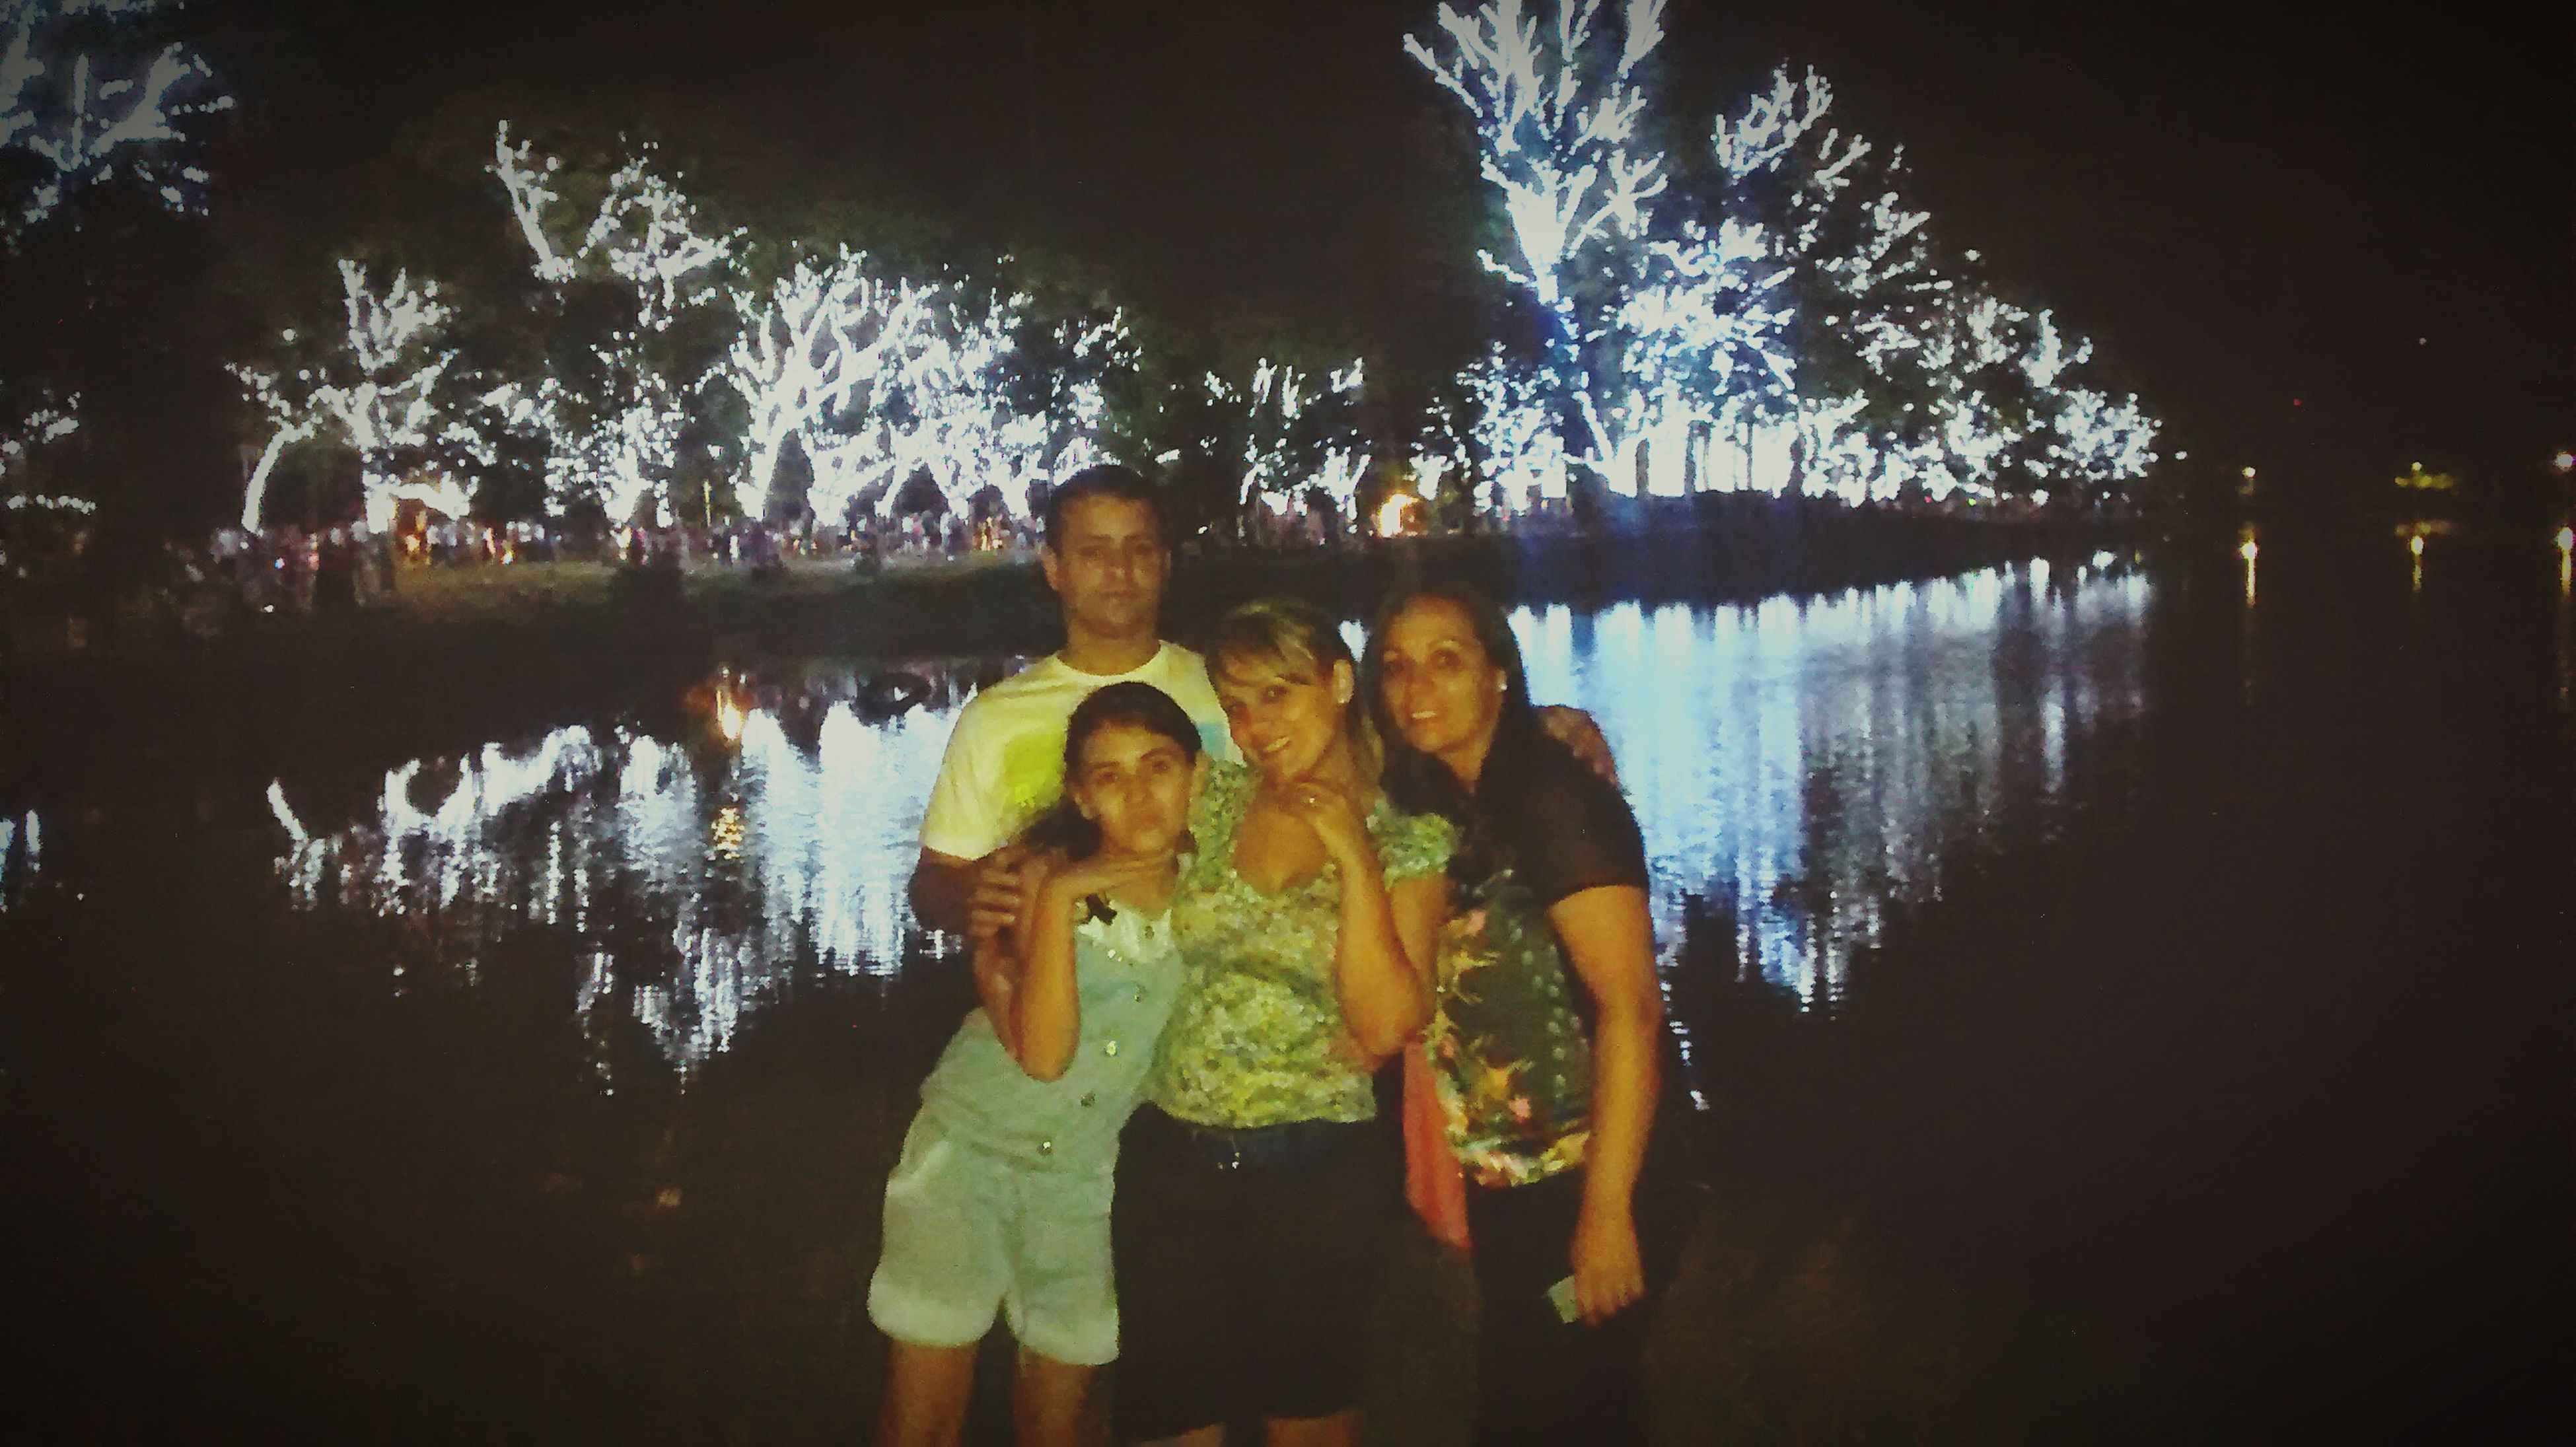 lifestyles, leisure activity, childhood, water, person, elementary age, boys, tree, girls, casual clothing, lake, togetherness, reflection, standing, full length, bonding, three quarter length